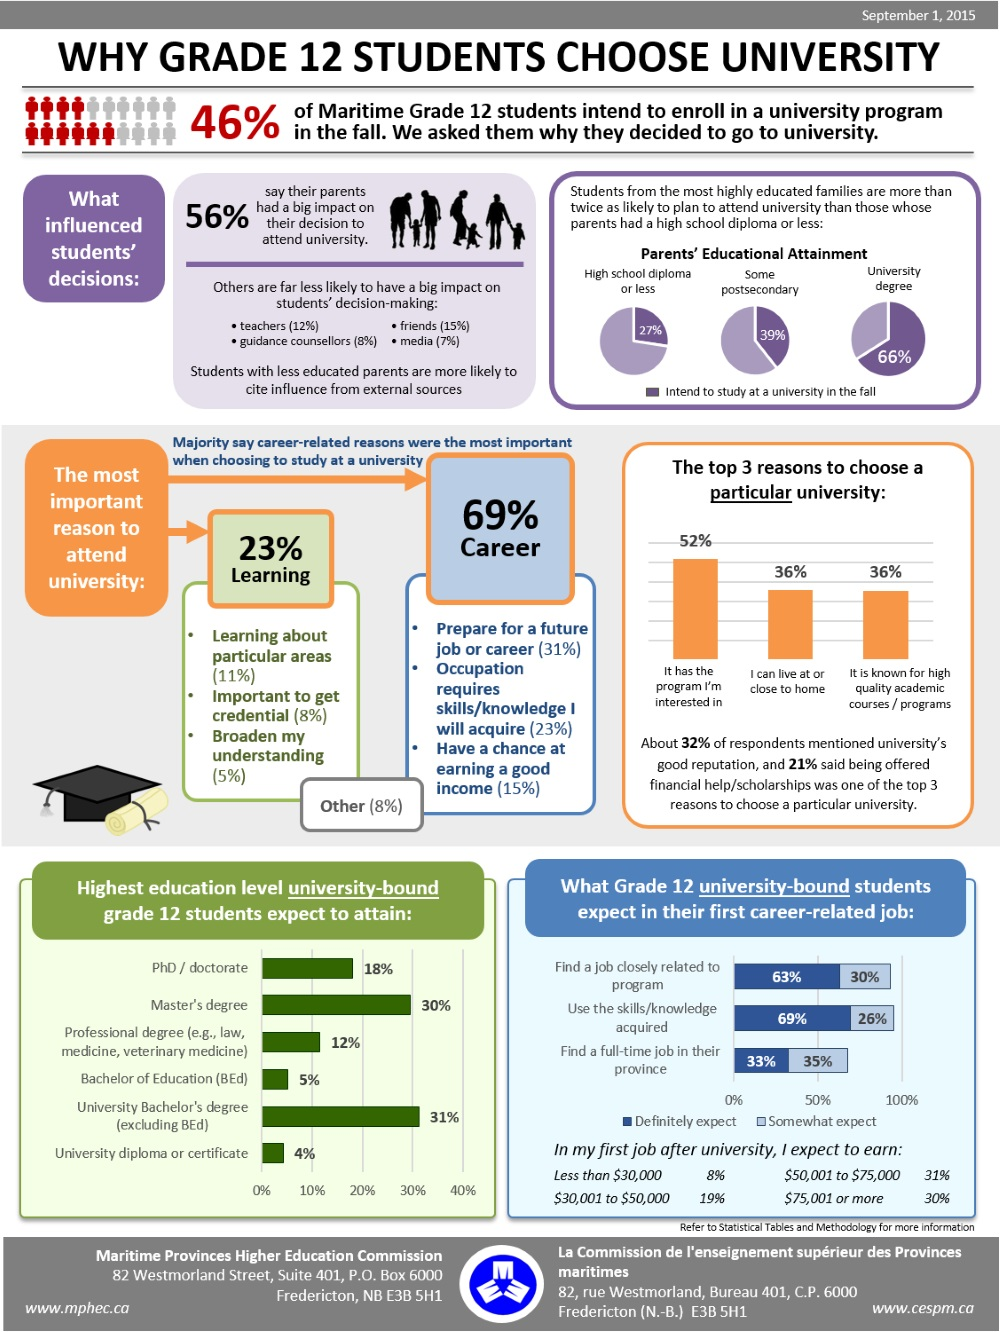 graduate outcomes survey program mphec transitions and expectations for postsecondary education